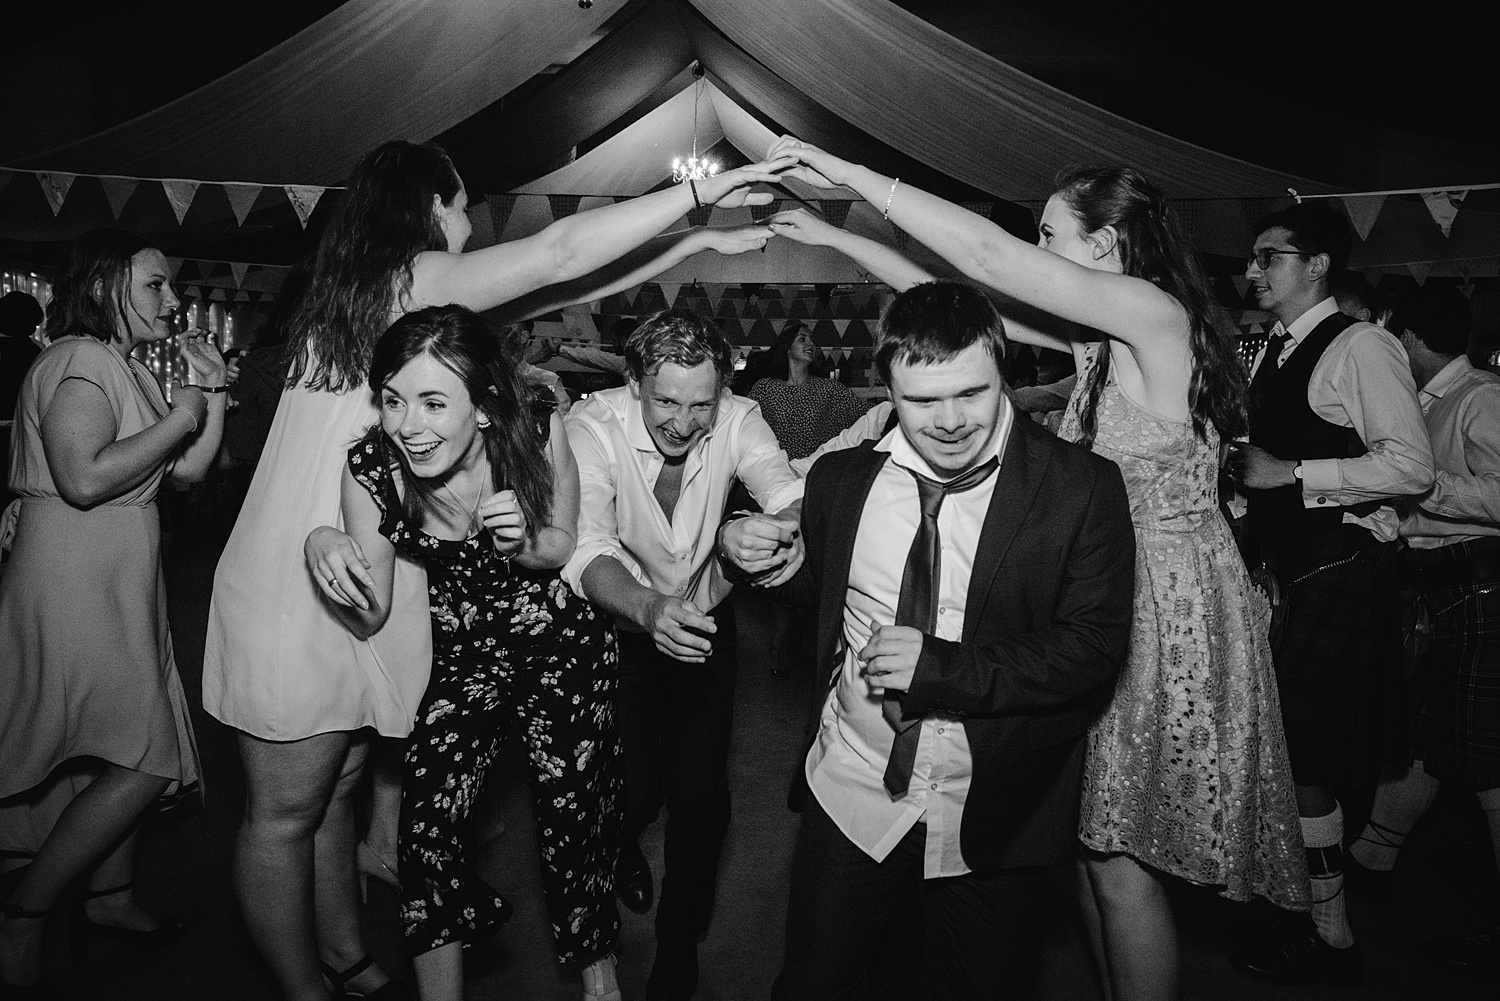 Claire-Fleck-Scottish-wedding-photography-2017__0005.jpg